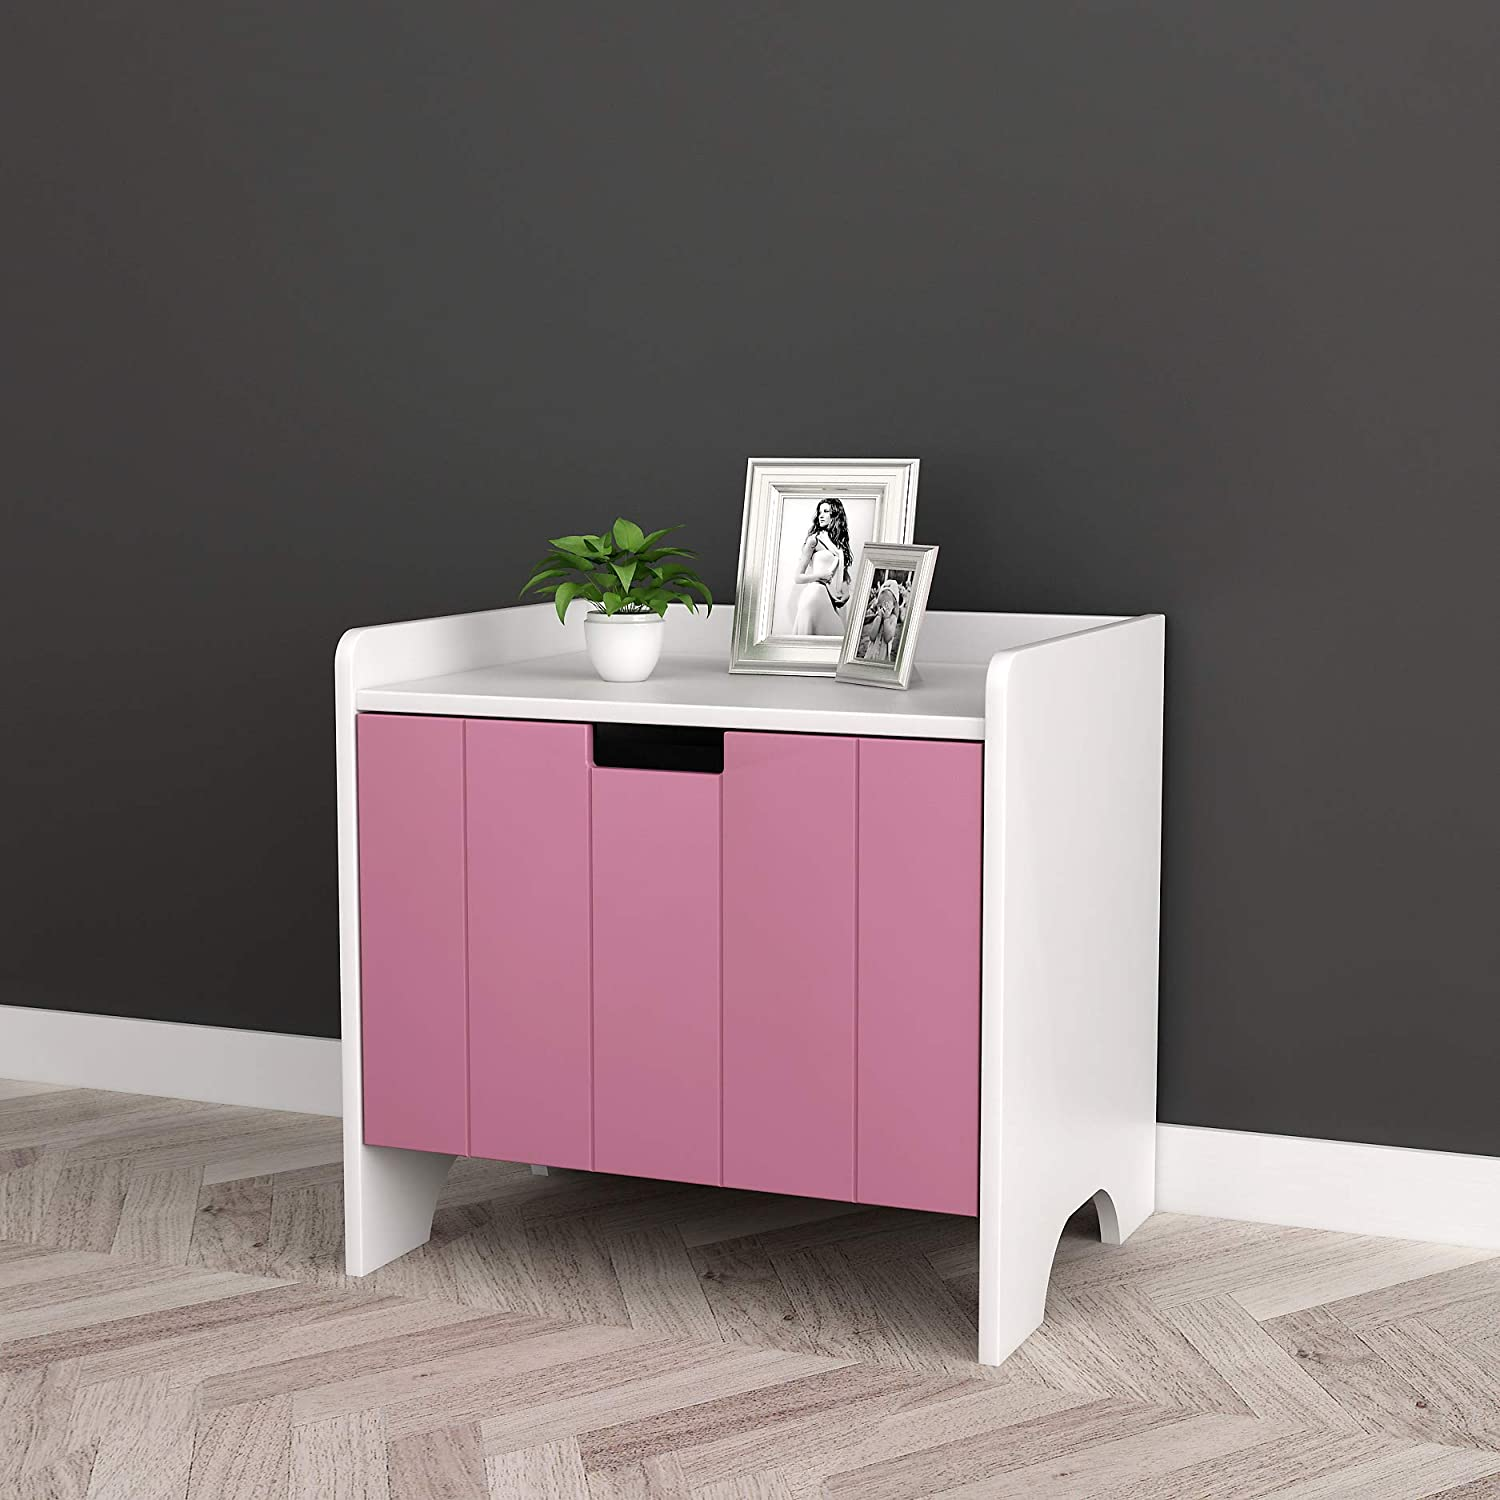 White and Pink Finish Kids Room Nightstand Side End Table with Drawer for Books